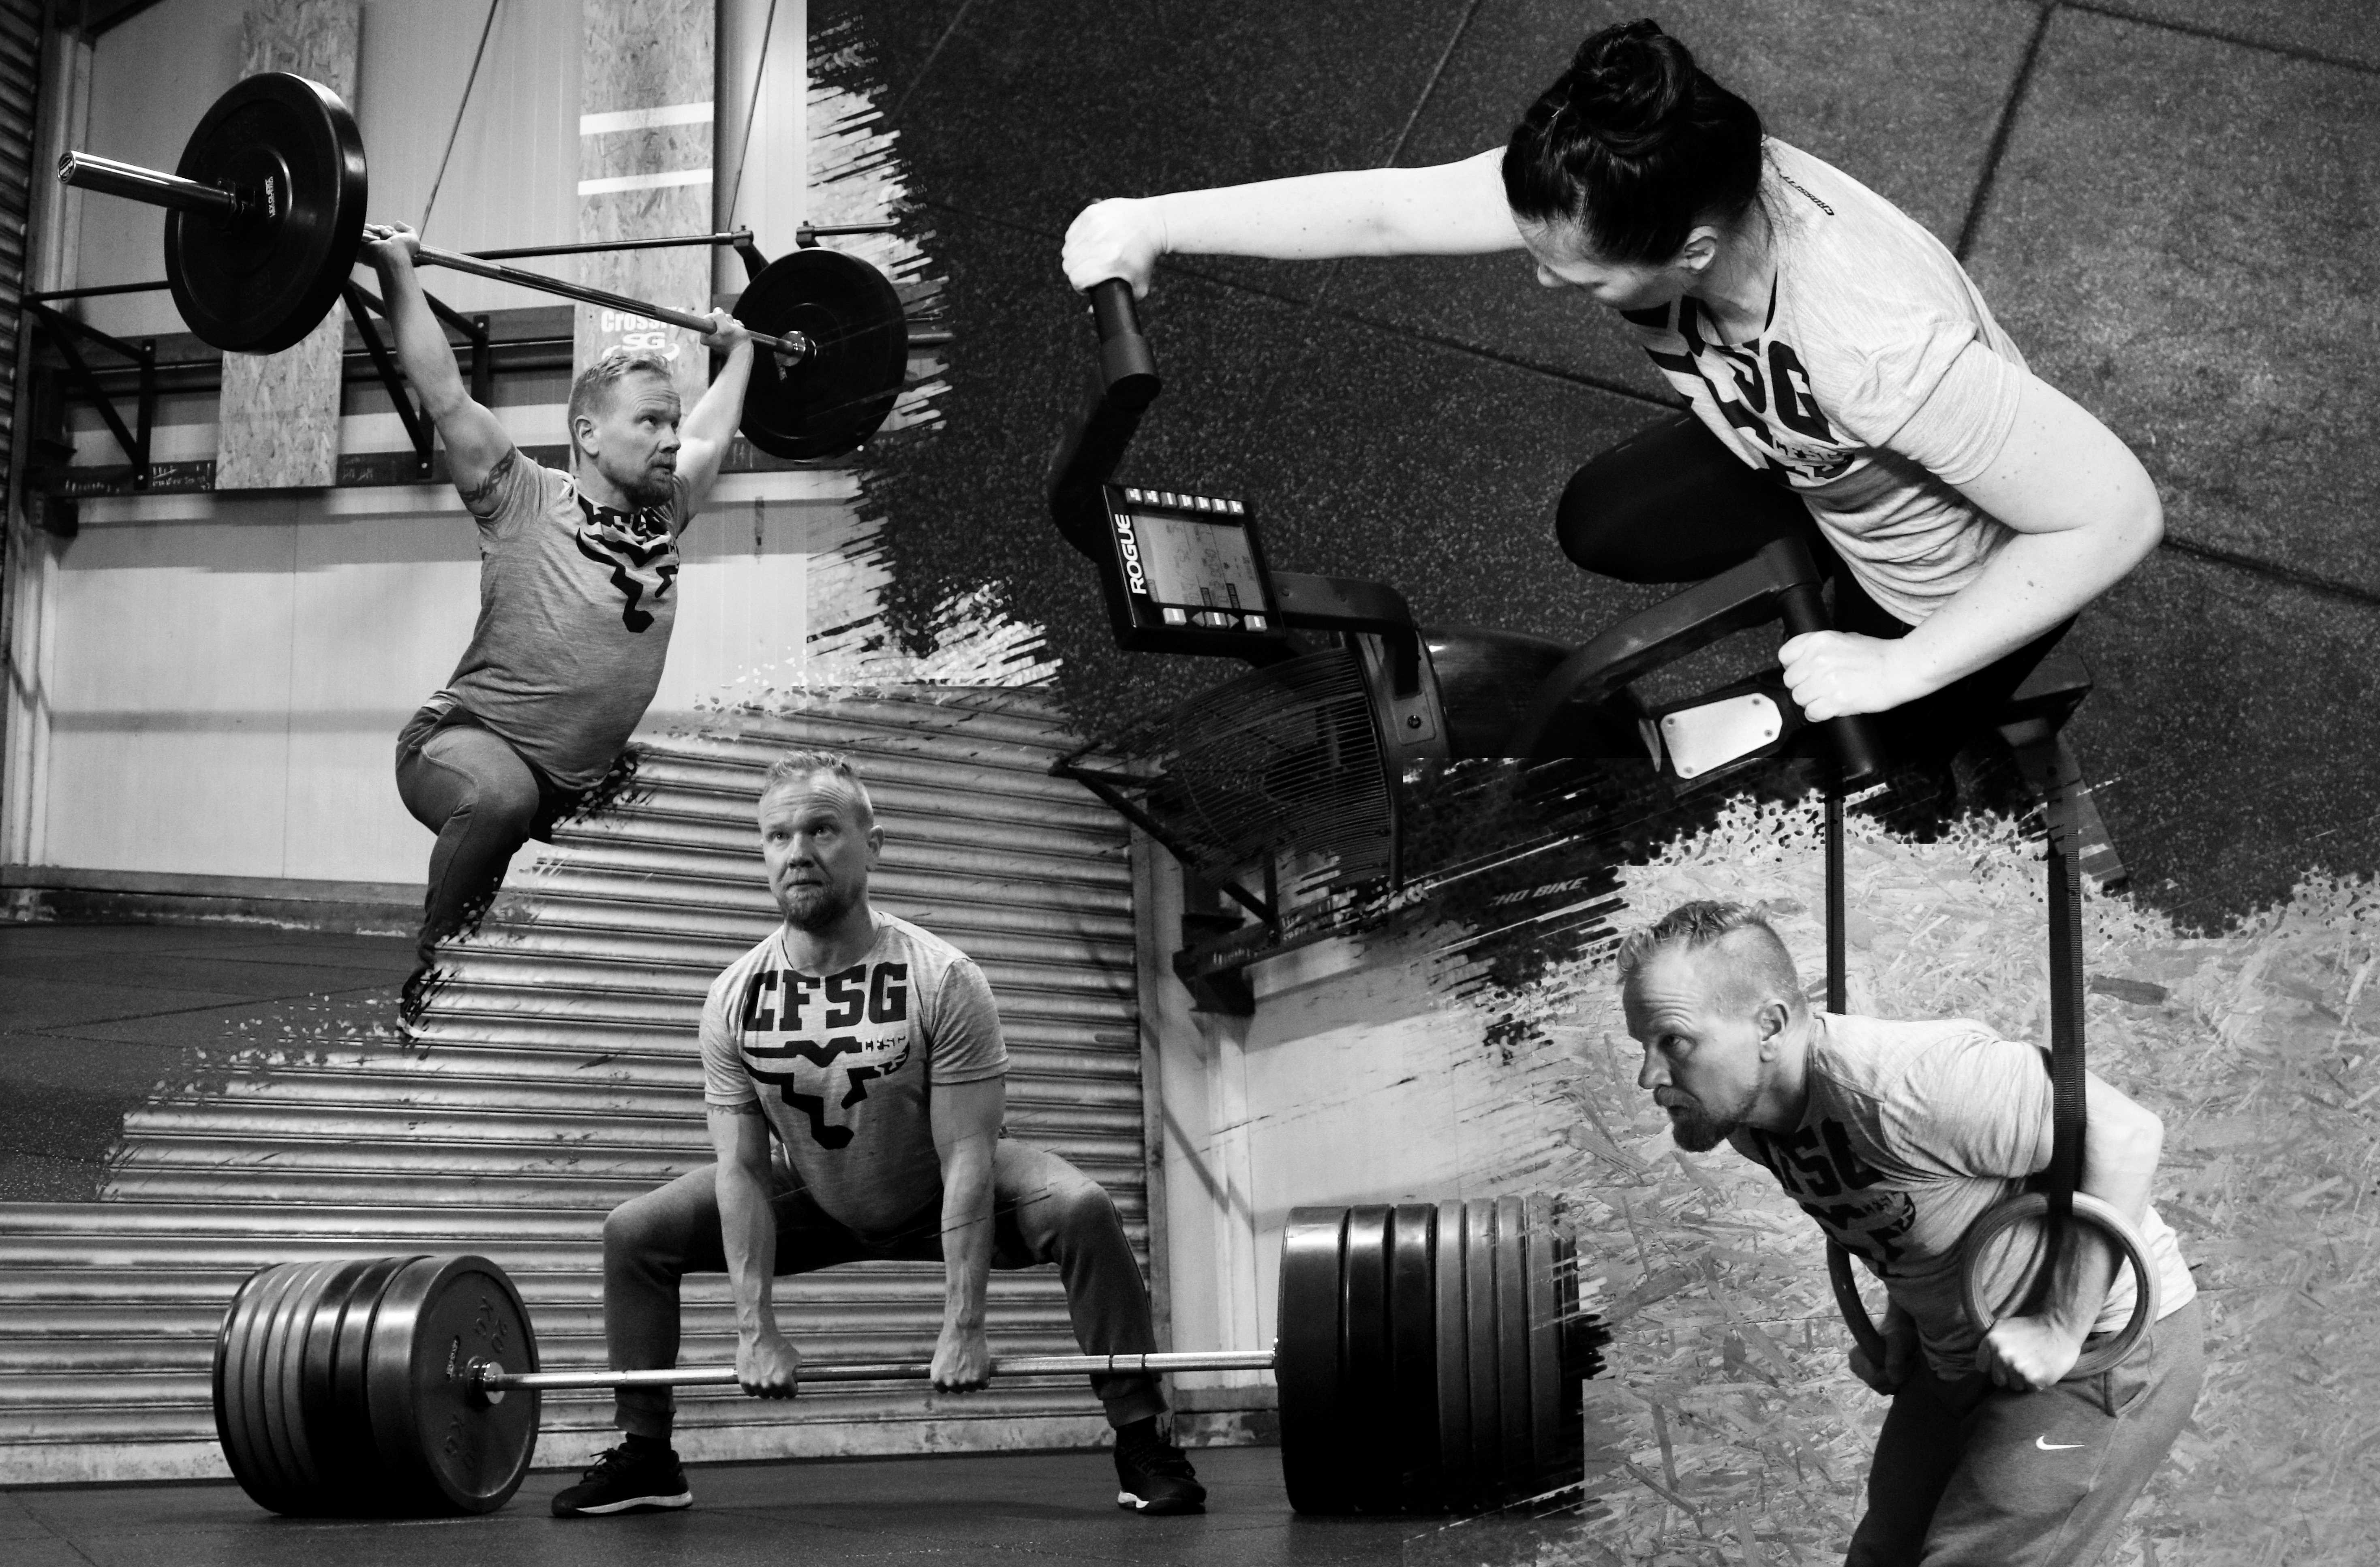 Crossfit SG in Hannover